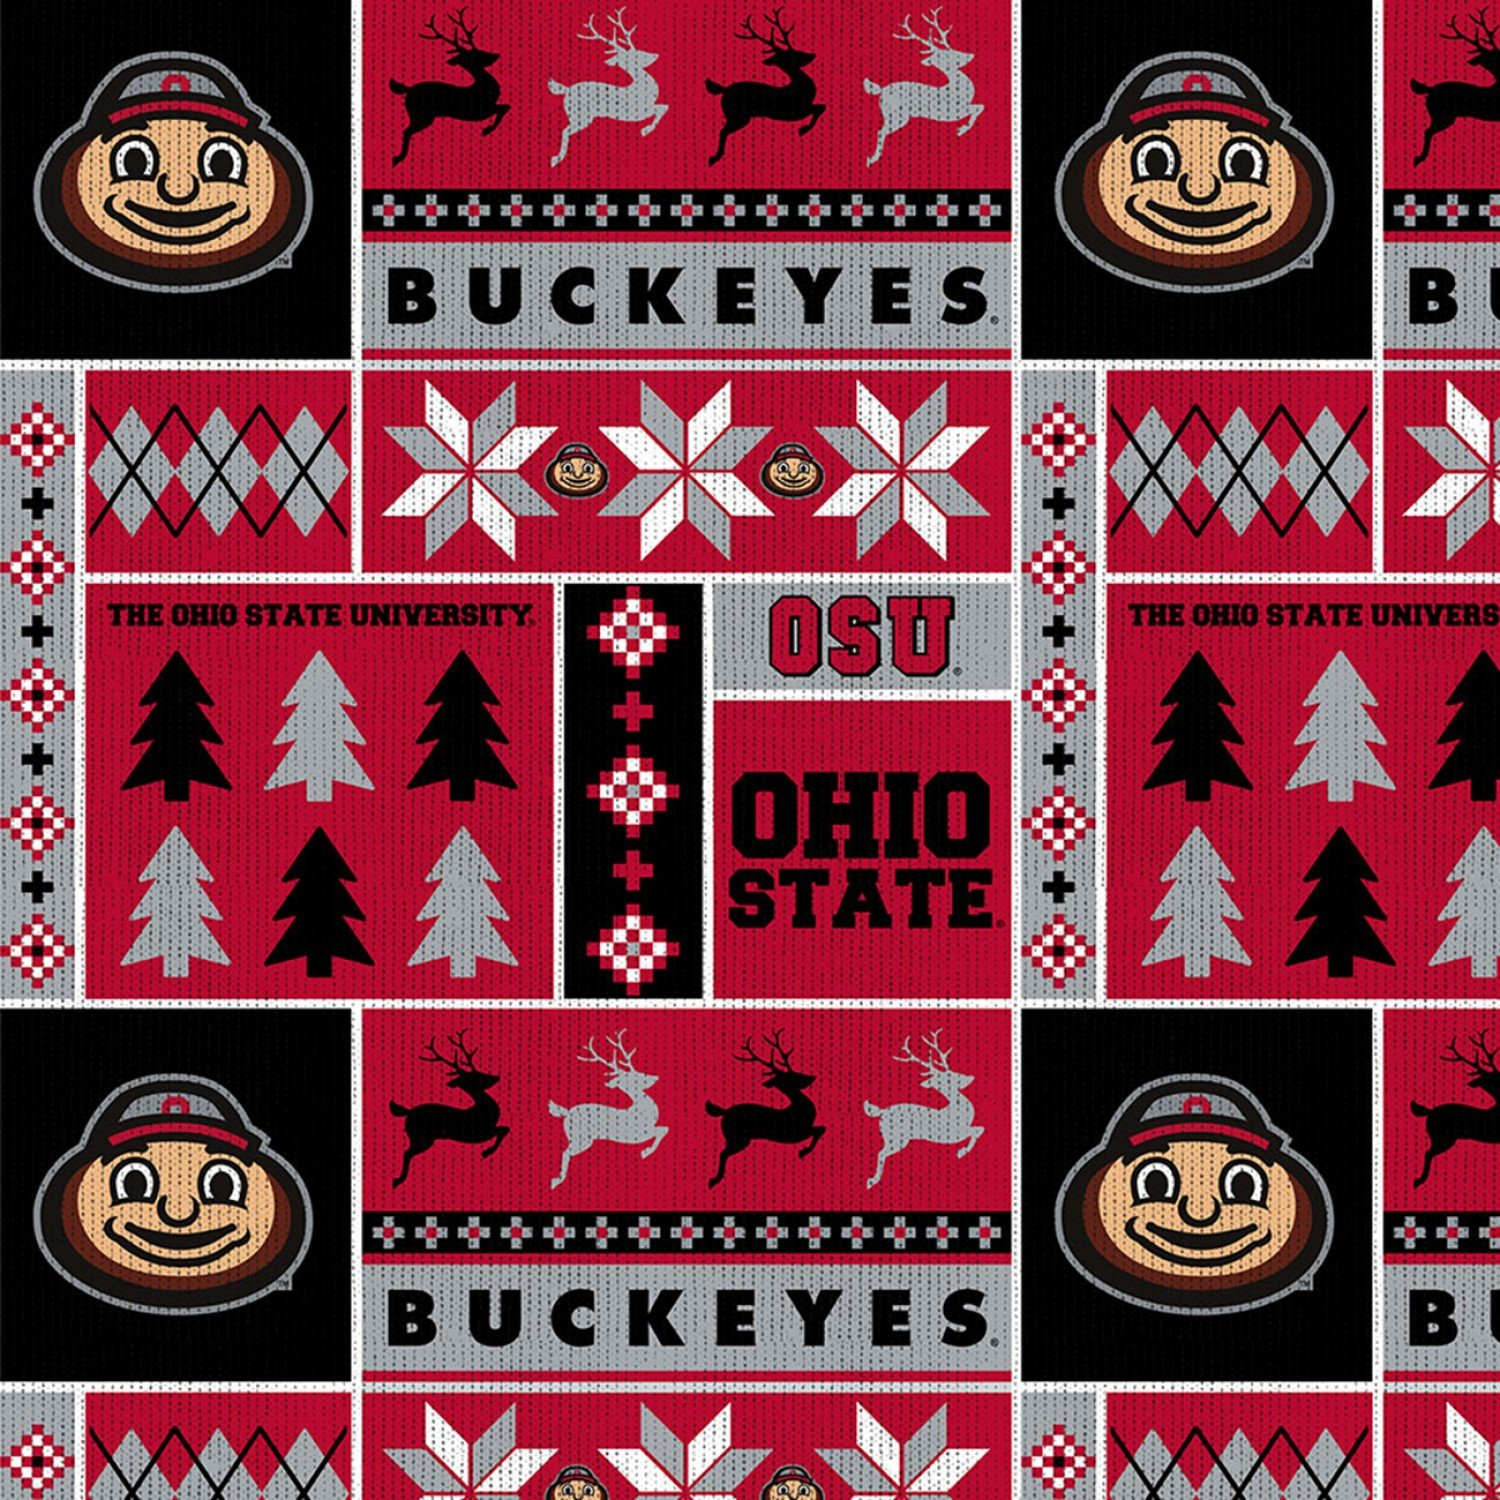 OHS-1182 Ohio State Buckeyes Ugly Sweater Fleece